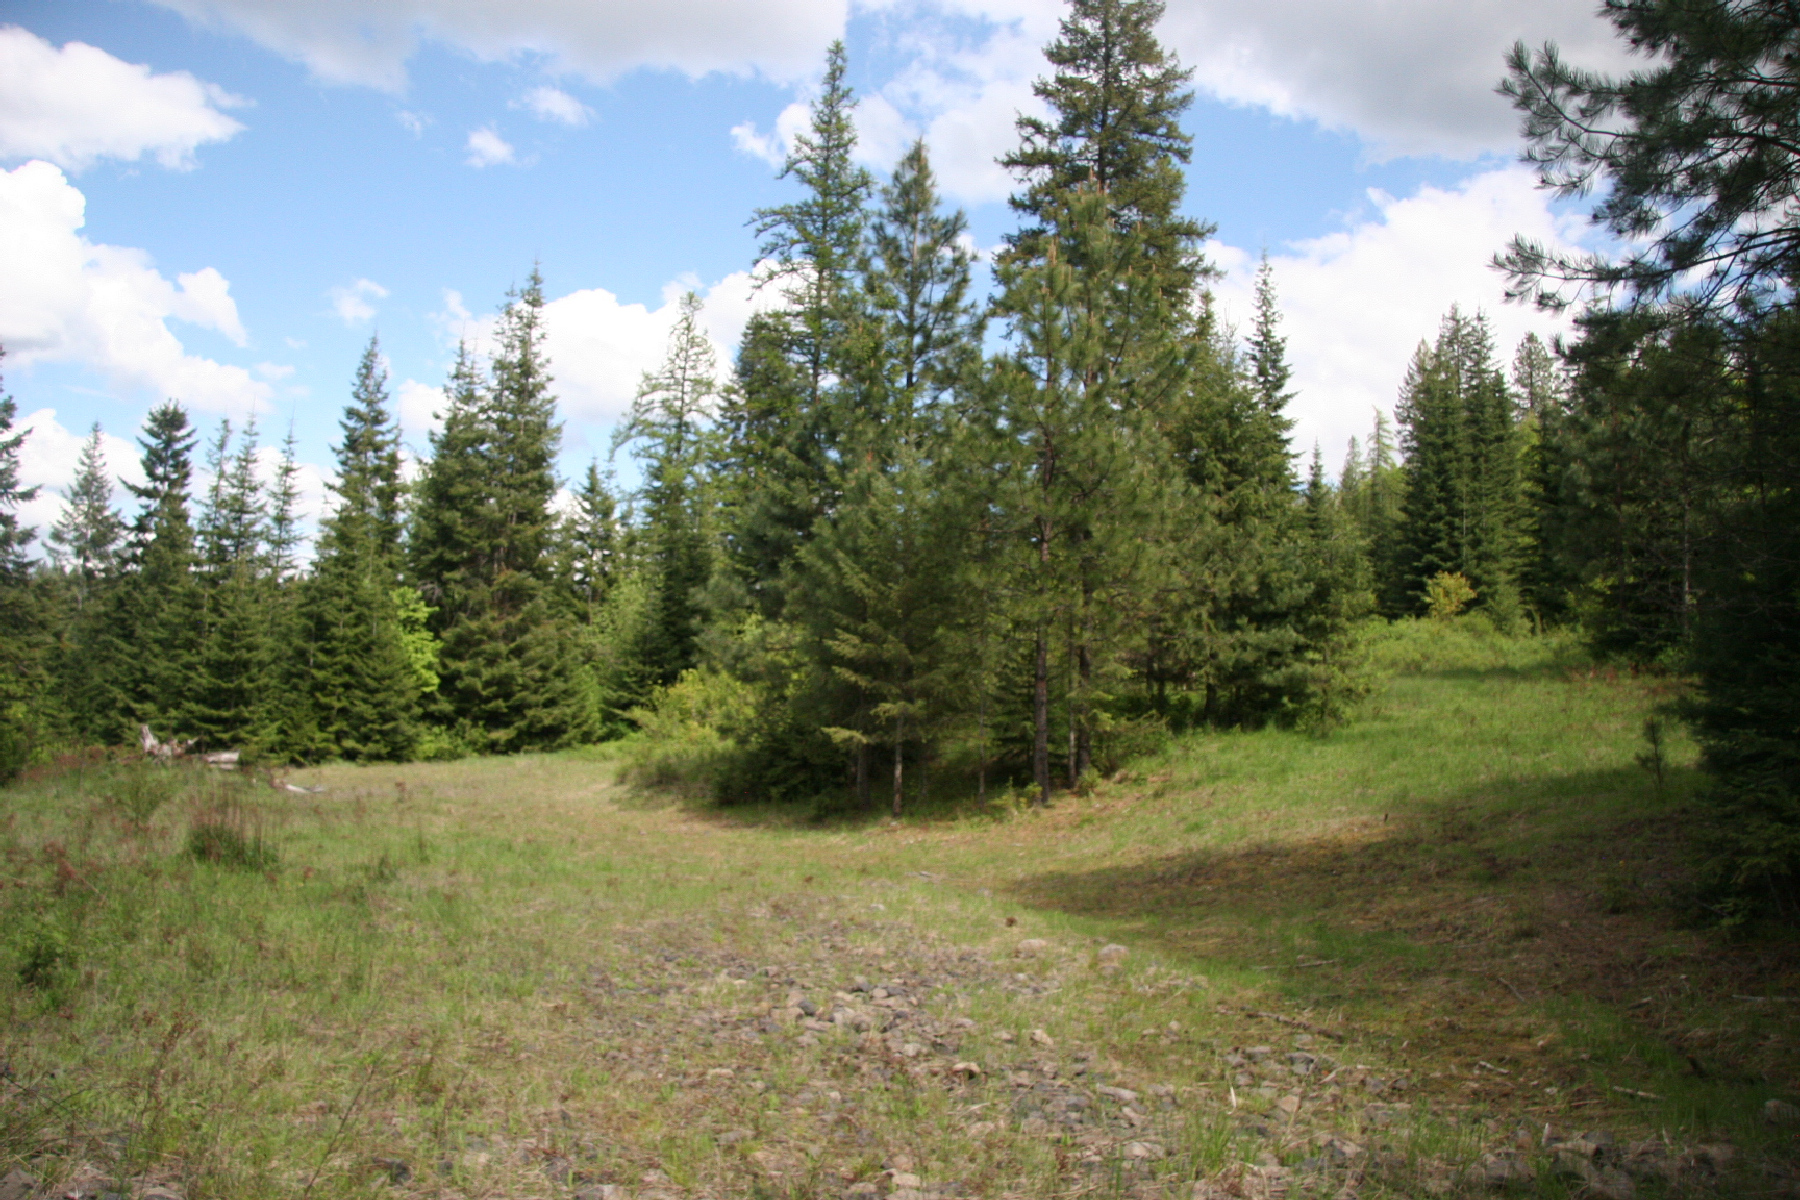 أراضي للـ Sale في Lot 1 Asbury Rd Harrison Idaho Harrison, Idaho 83833 United States